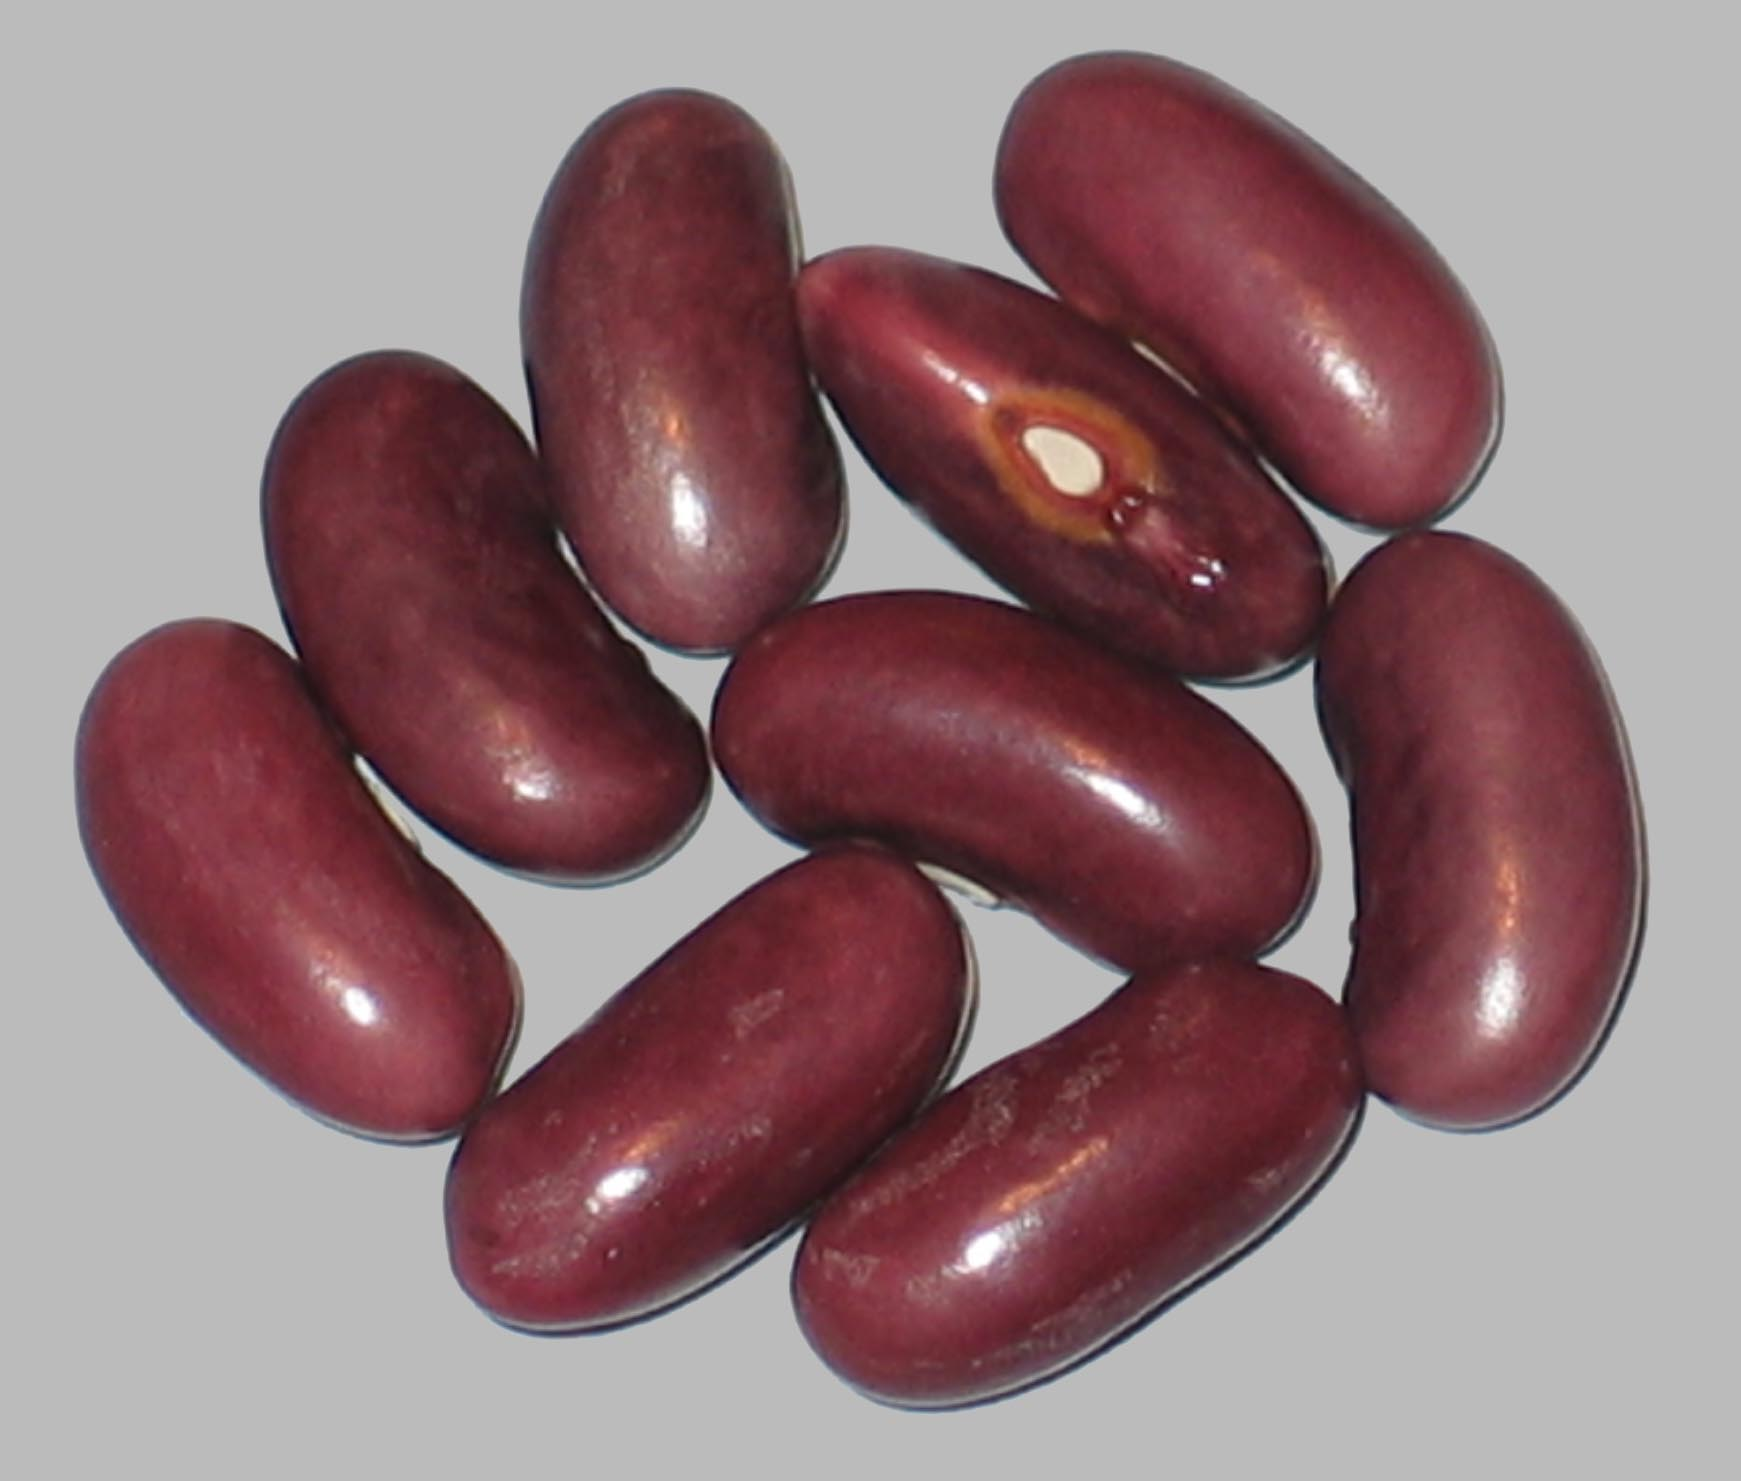 image of College Early beans